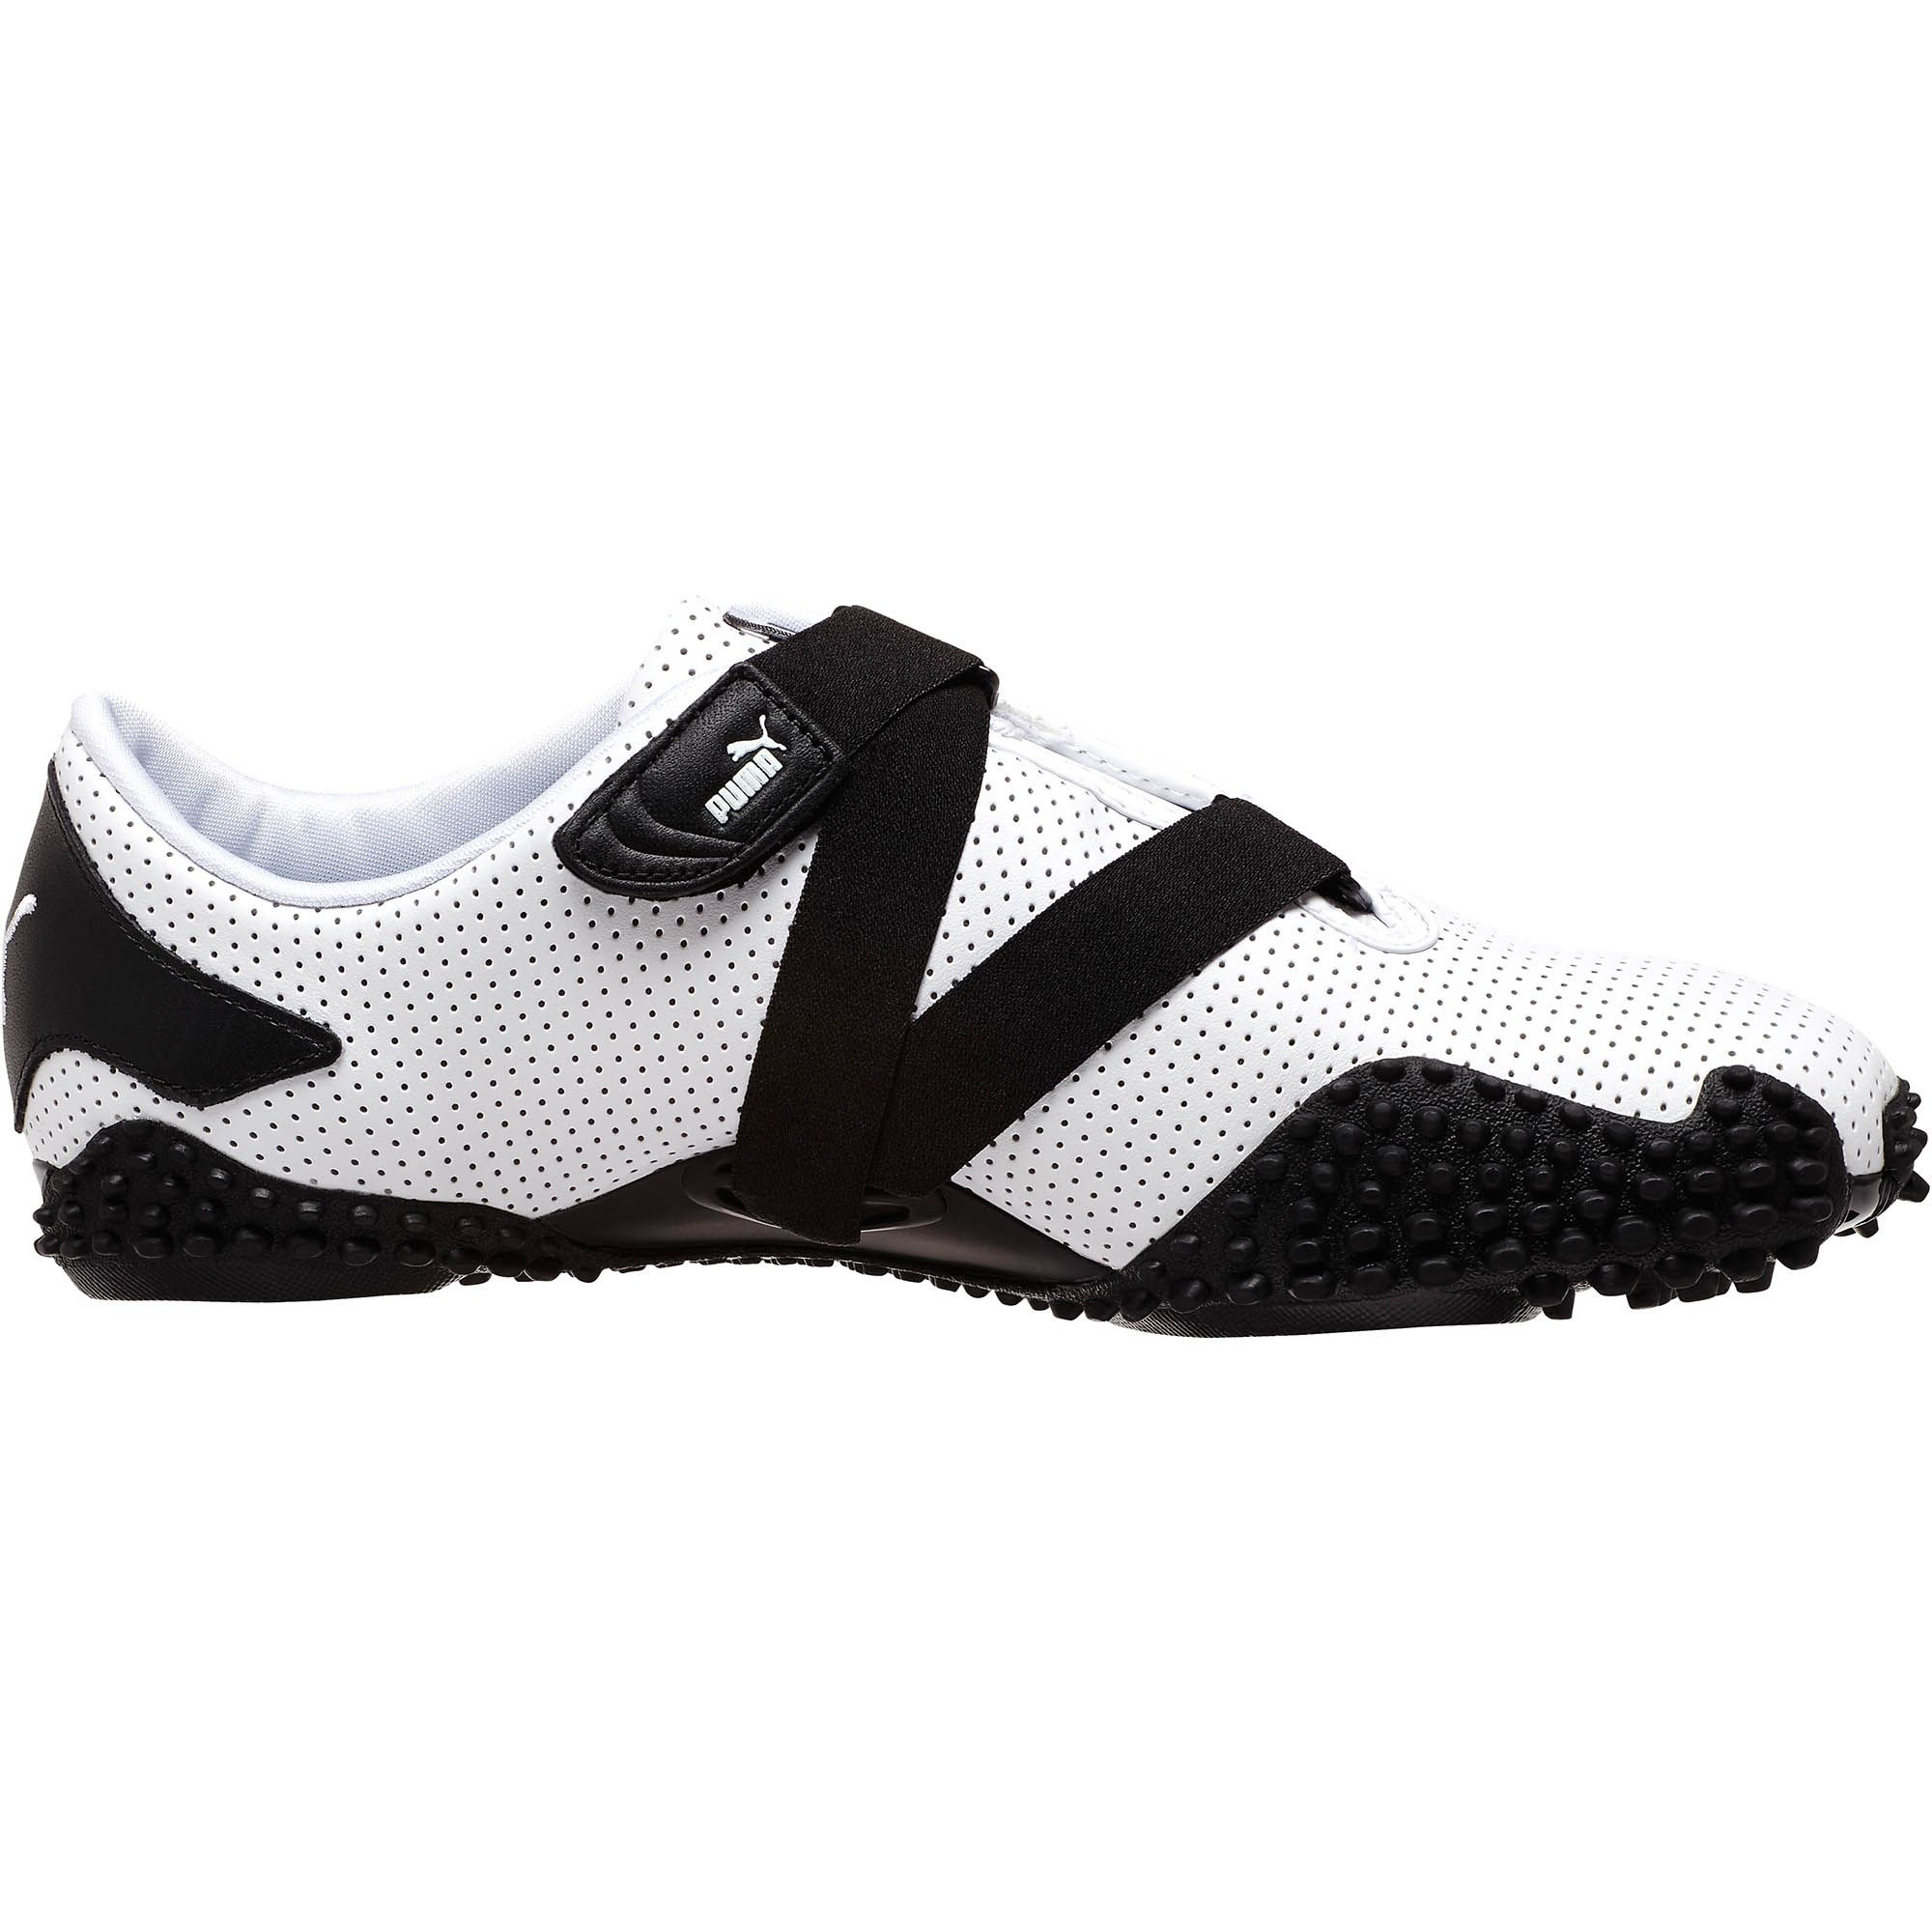 Puma Mostro Perf Leather Shoes In Black For Men White